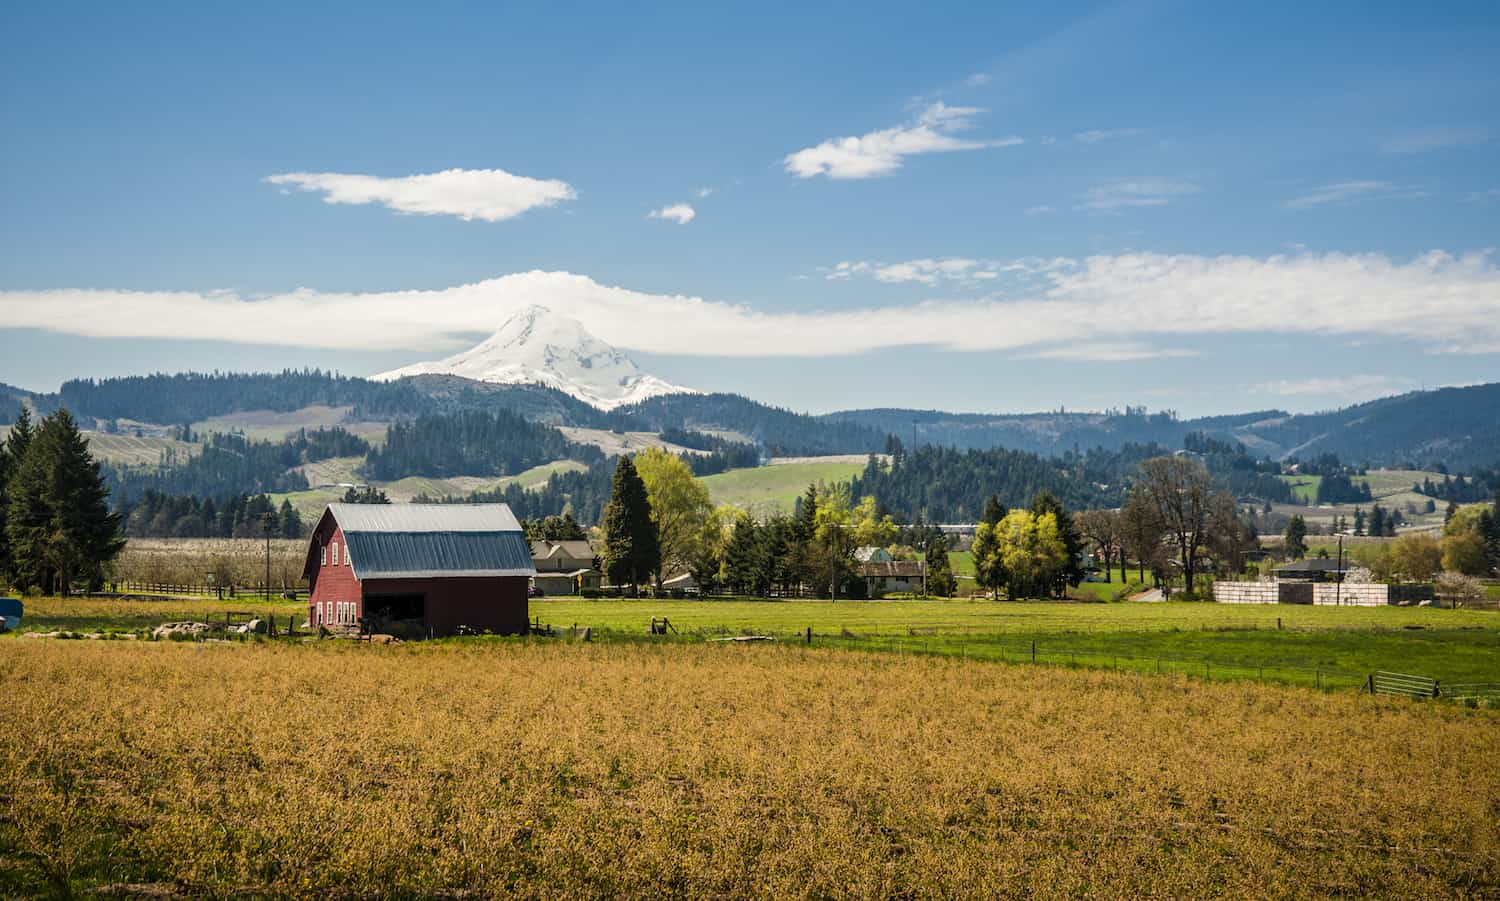 Food Tank had the chance to speak with Narendra Varma, the founder of Our Table, a multi-stakeholder cooperative farm and grocery in Sherwood, Oregon on the future of food cooperatives.